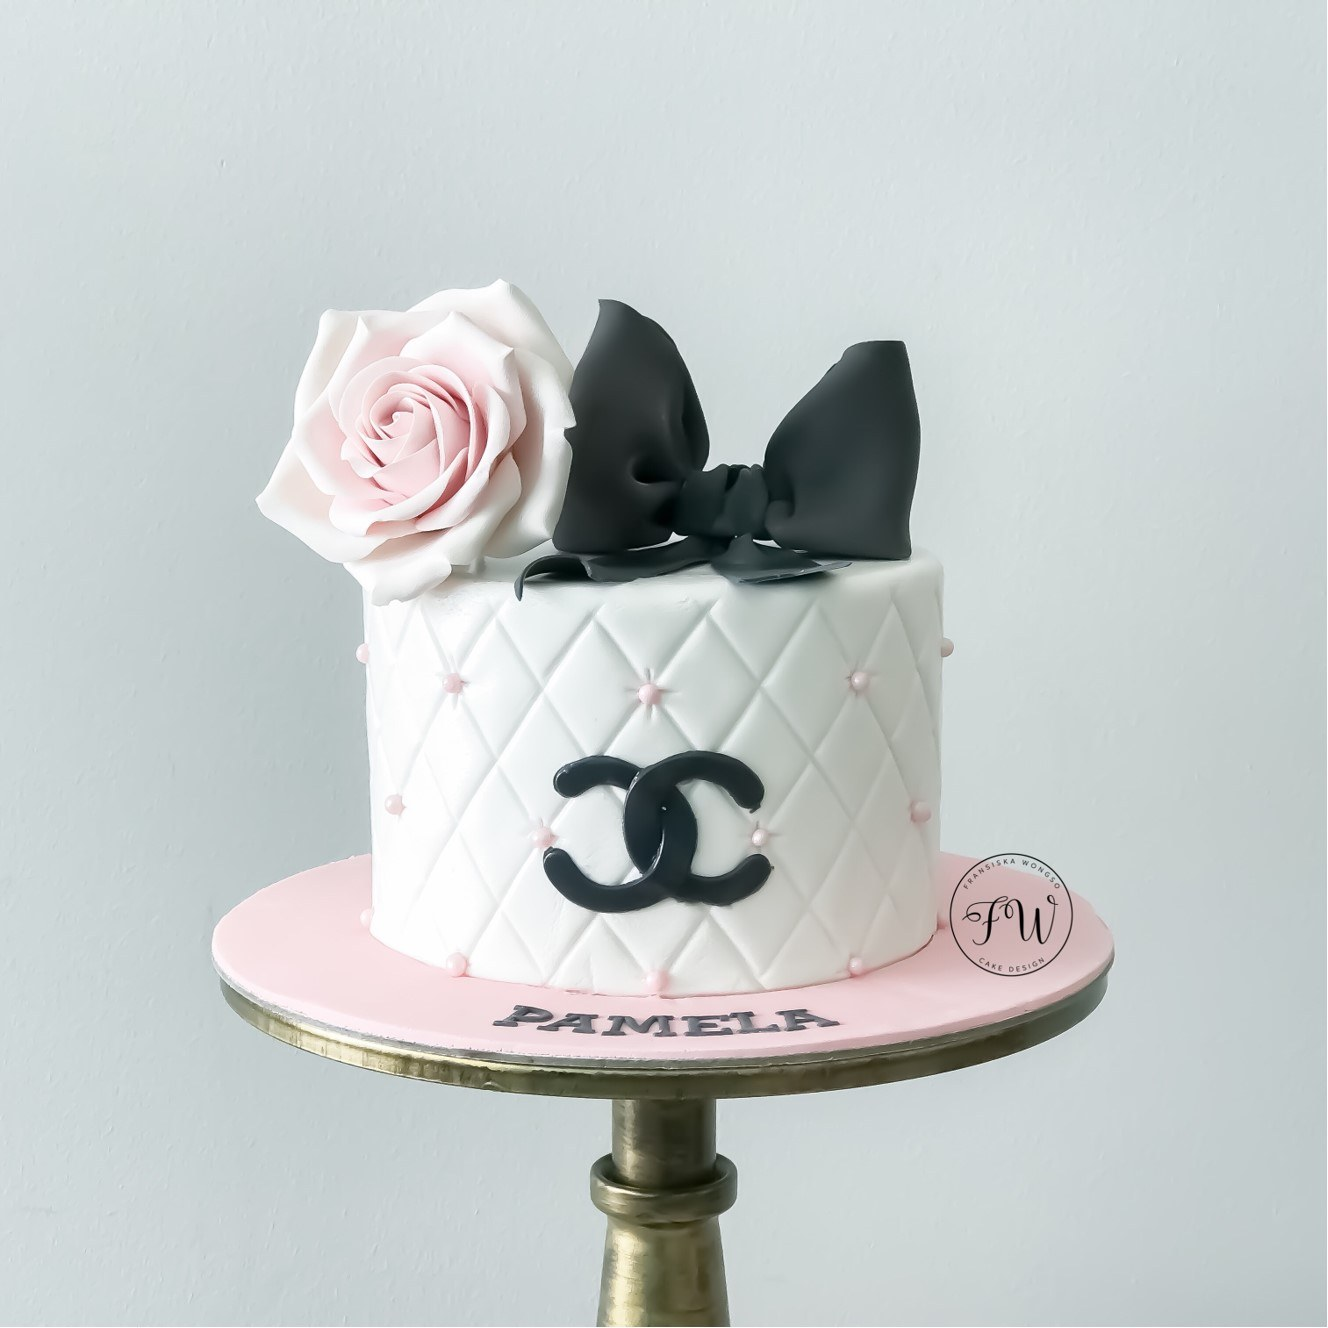 Chanel themed birthday cake